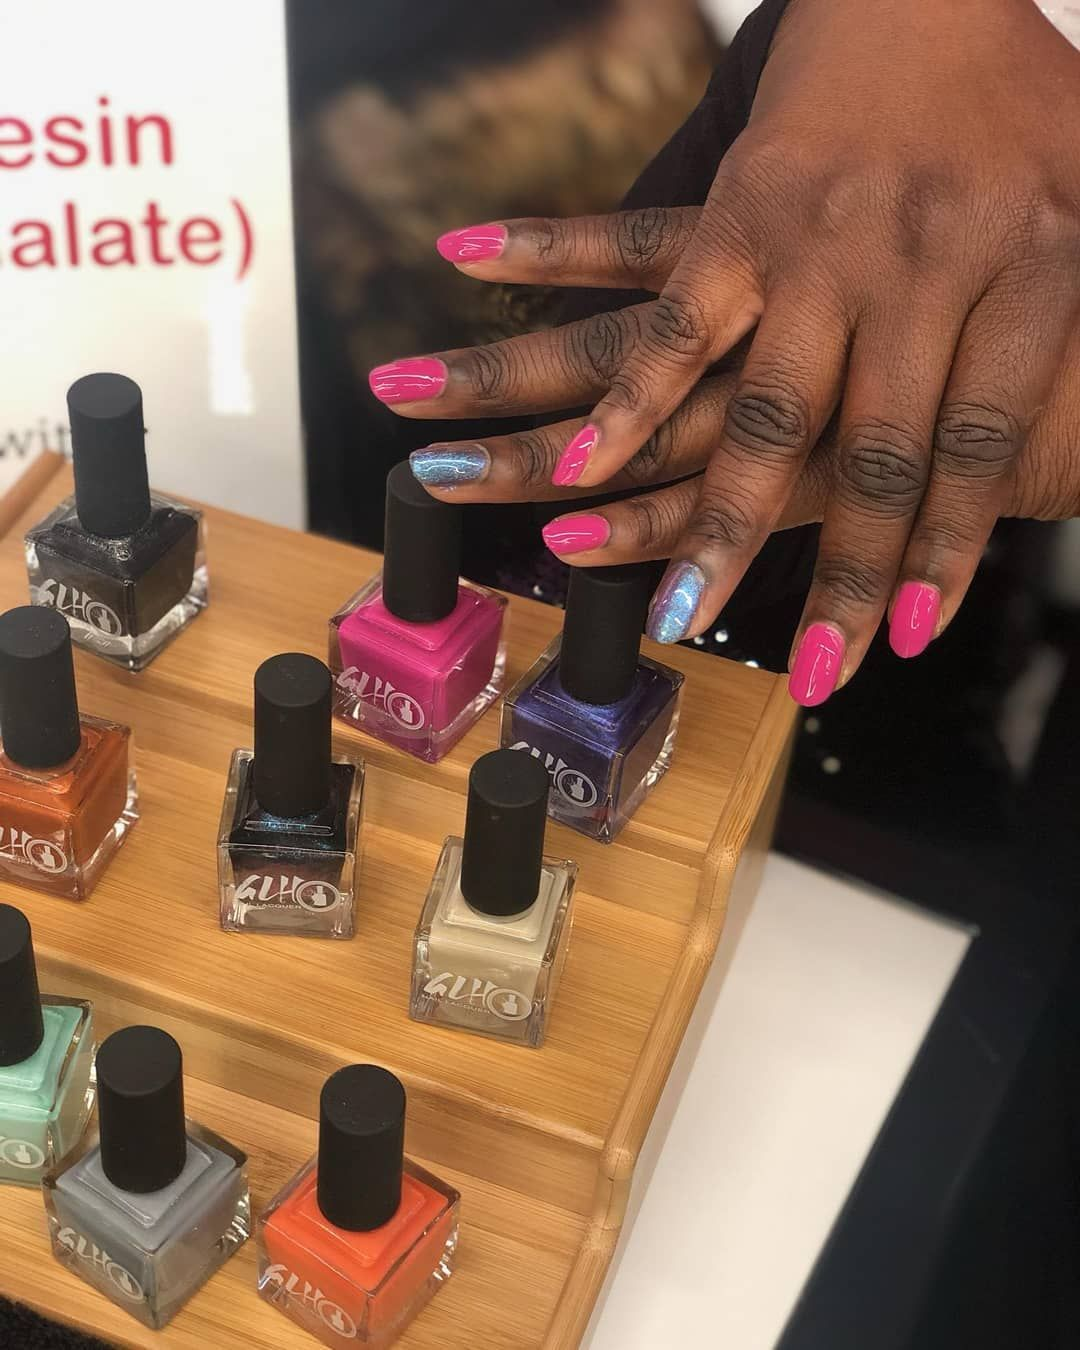 A List Of 25 Black Owned Independently Owned Nail Polish Brands Each Brand Is Vegan Non Toxic Cruelt Nail Polish Brands Nail Polish Indie Nail Polish Brands